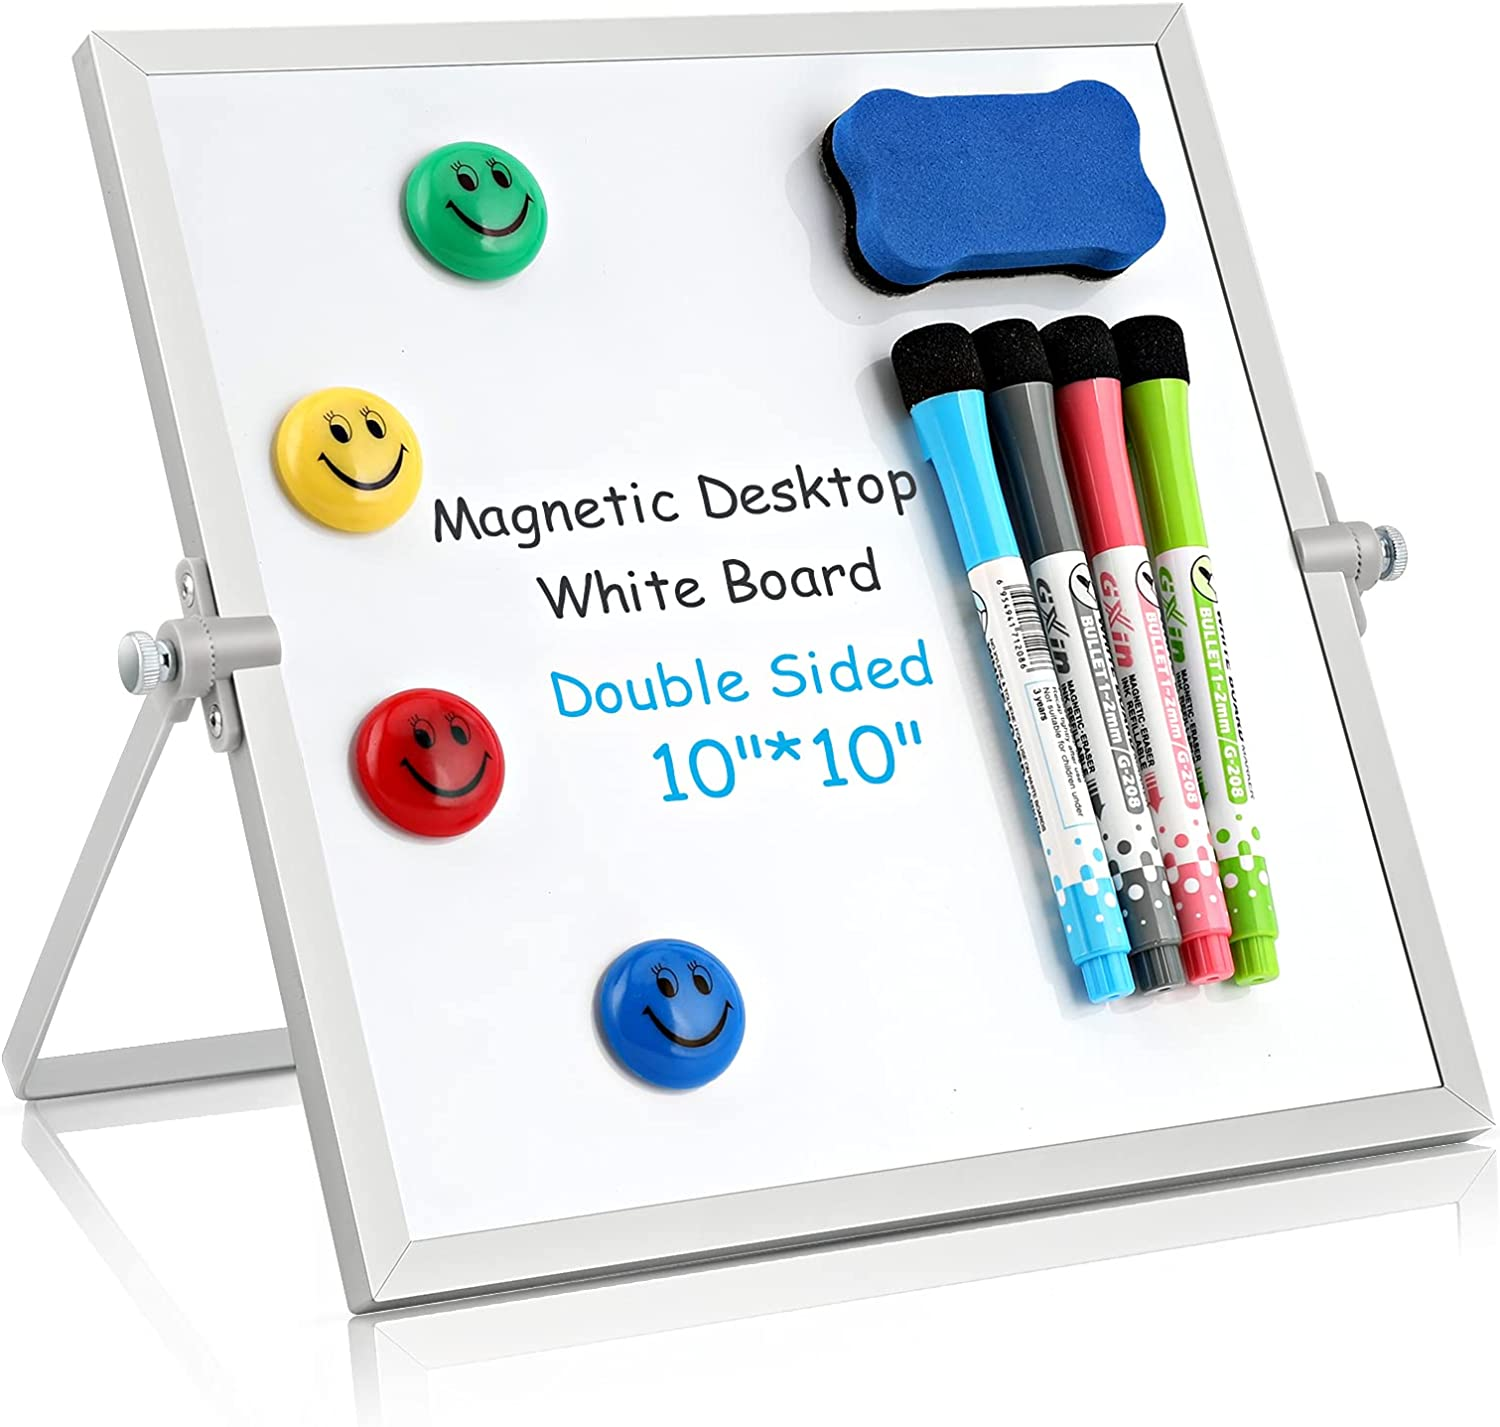 Max 66% OFF Dry Erase White Board free Small Magnetic Whiteboard 10